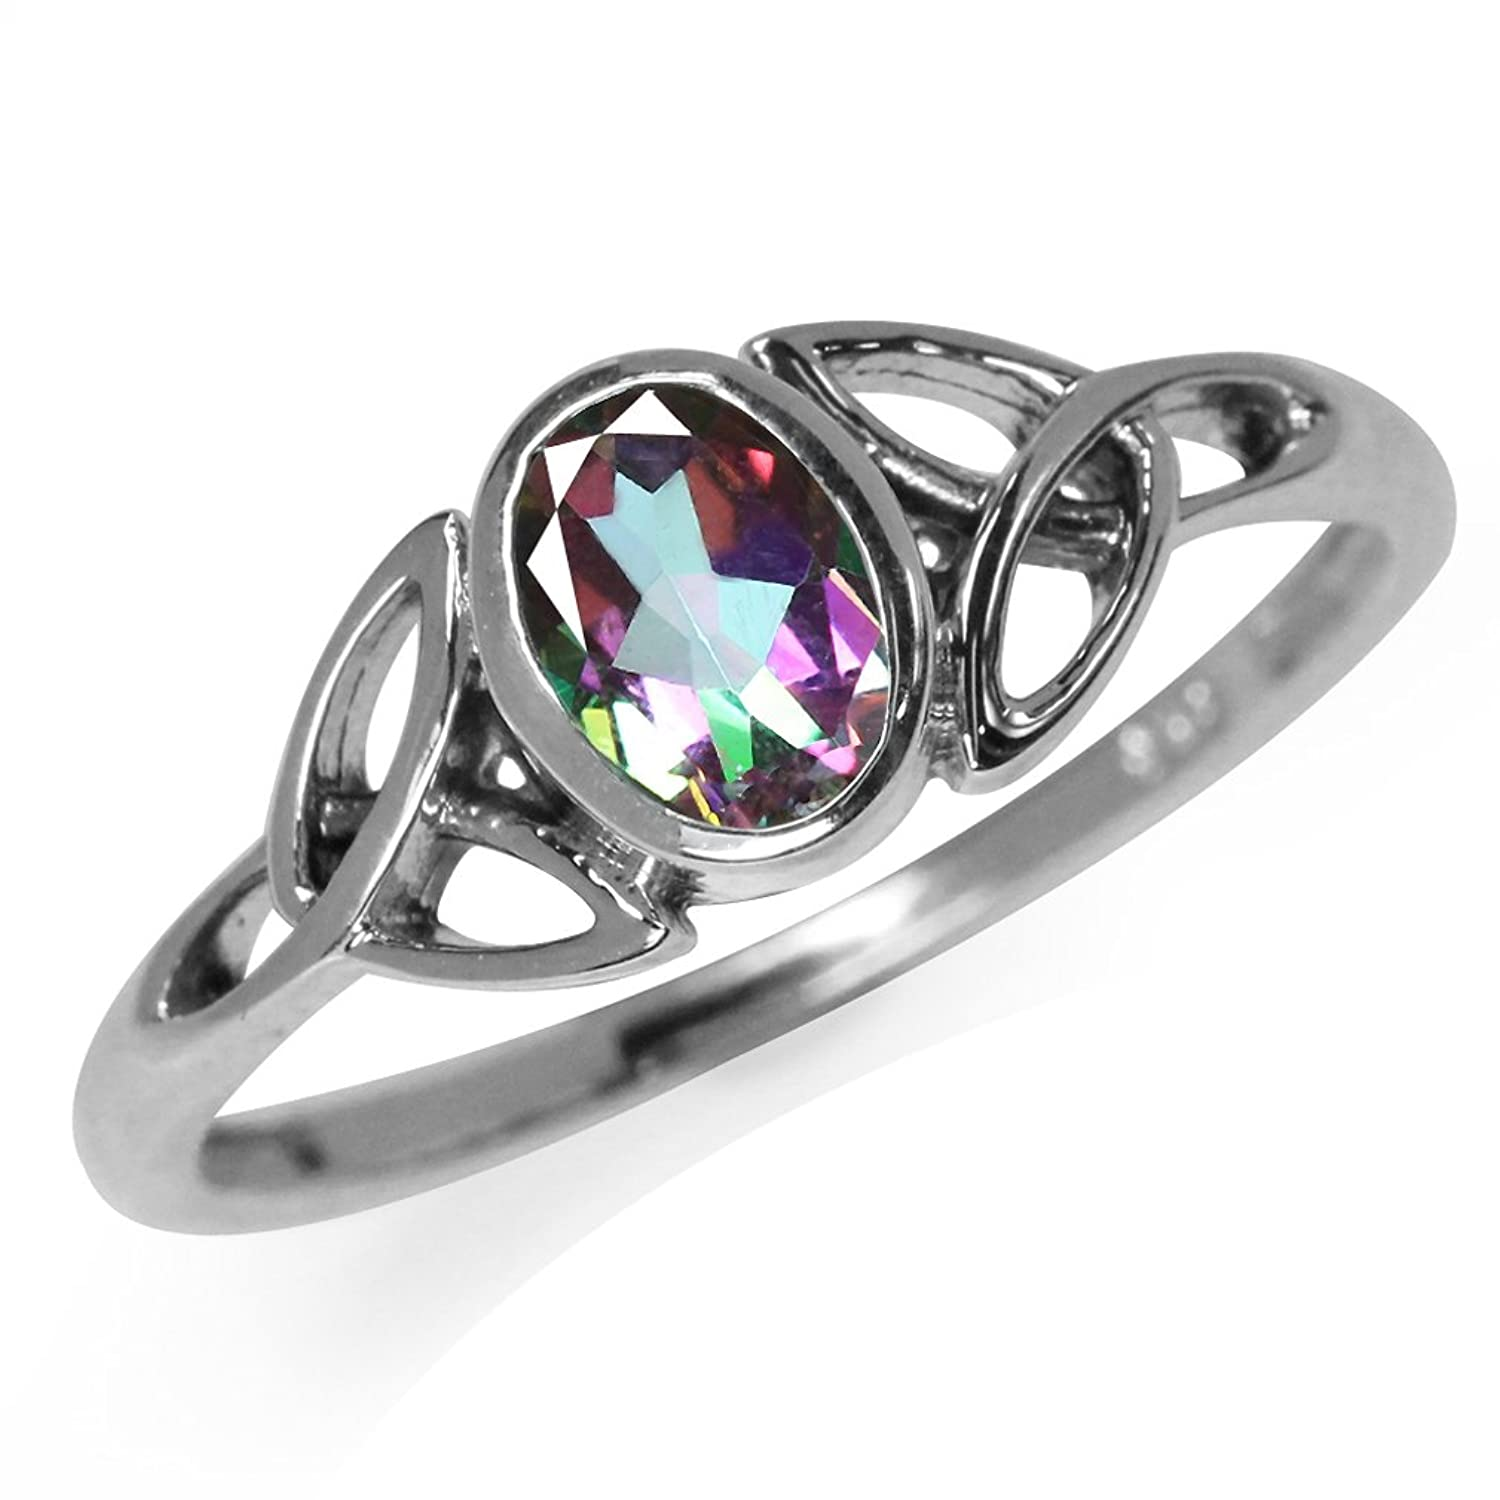 jewelry from natural fire mystic sterling in engagement rings emerald ring silver wedding women genuine cut topaz item rainbow hot for